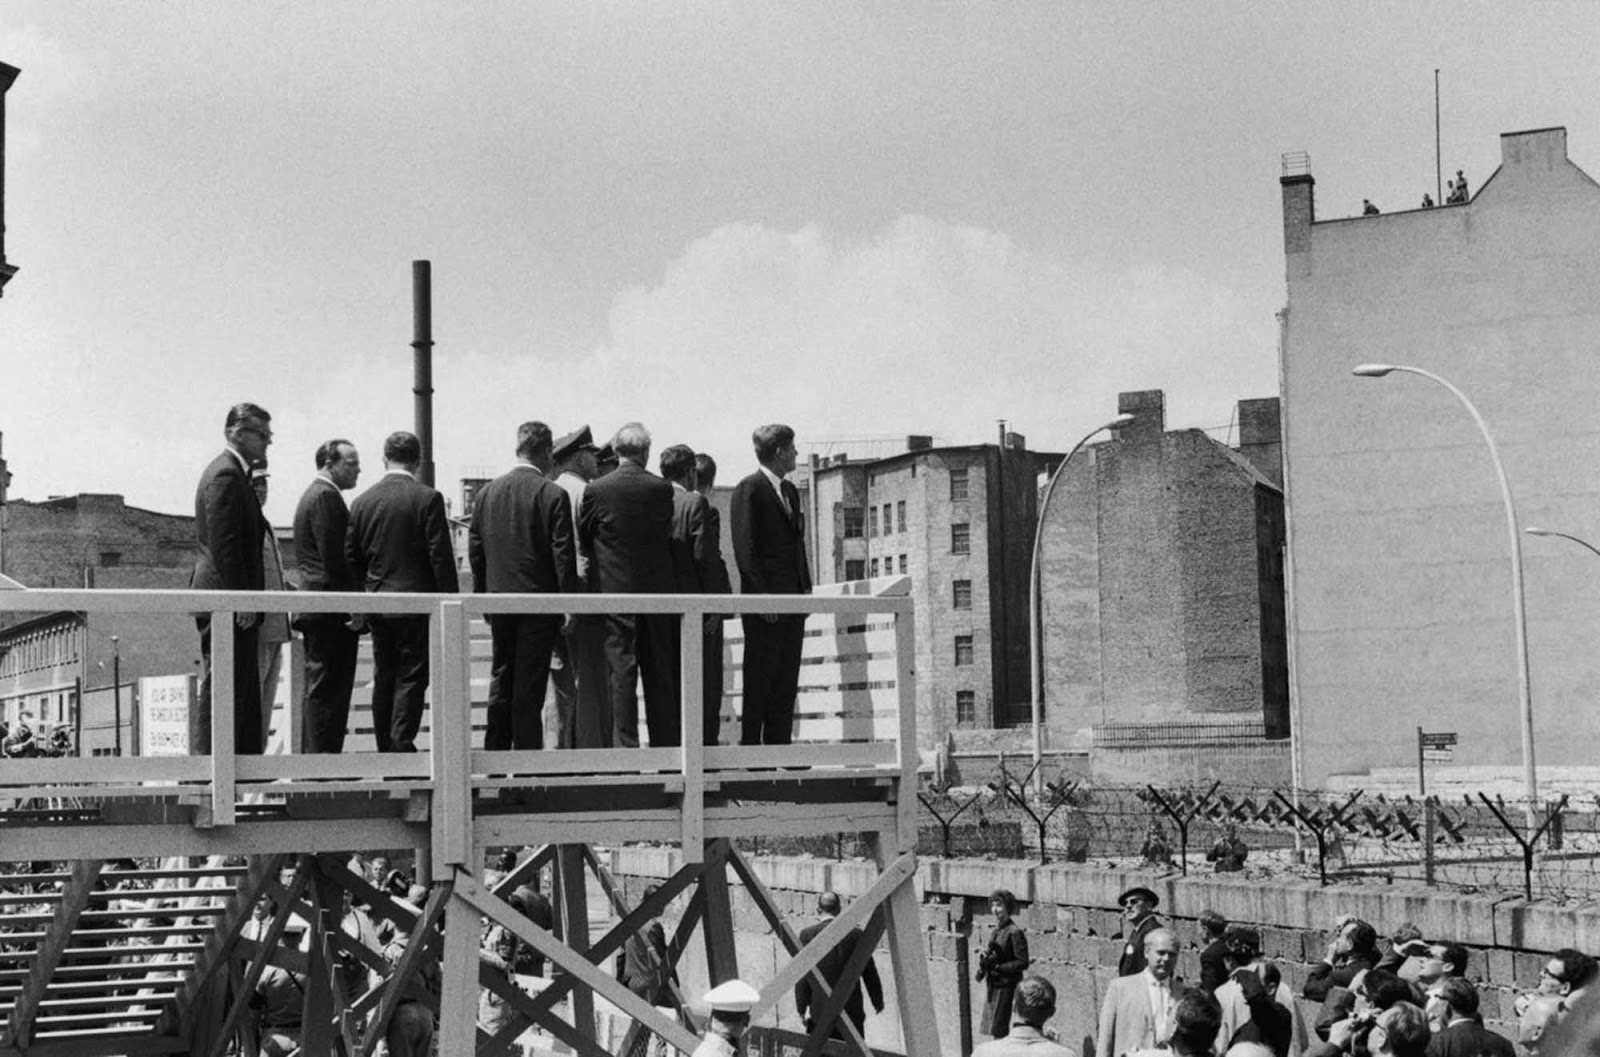 Kennedy surveys the Berlin Wall from a special viewing platform.